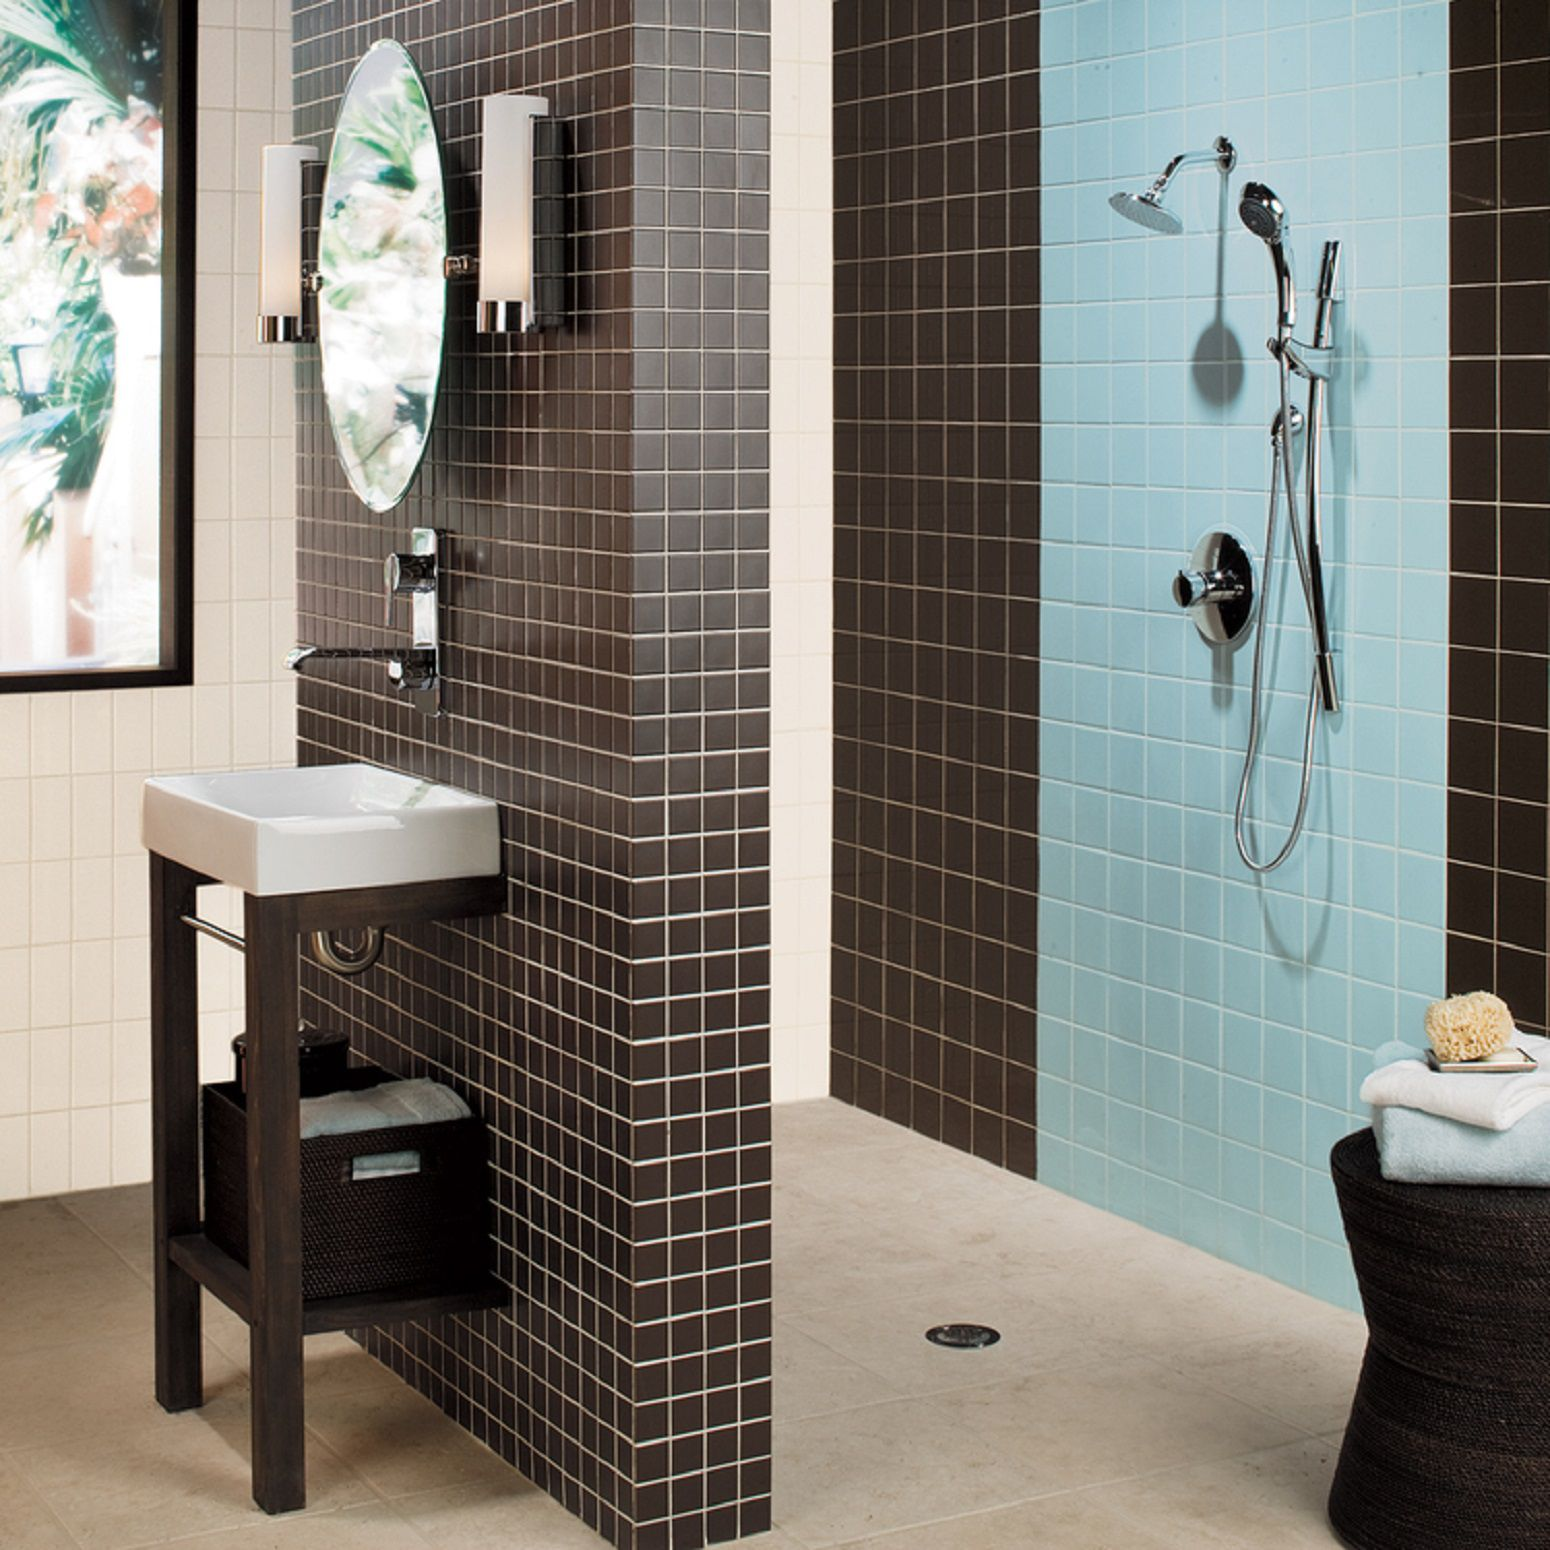 Tile picture gallery showers floors walls dailygadgetfo Gallery